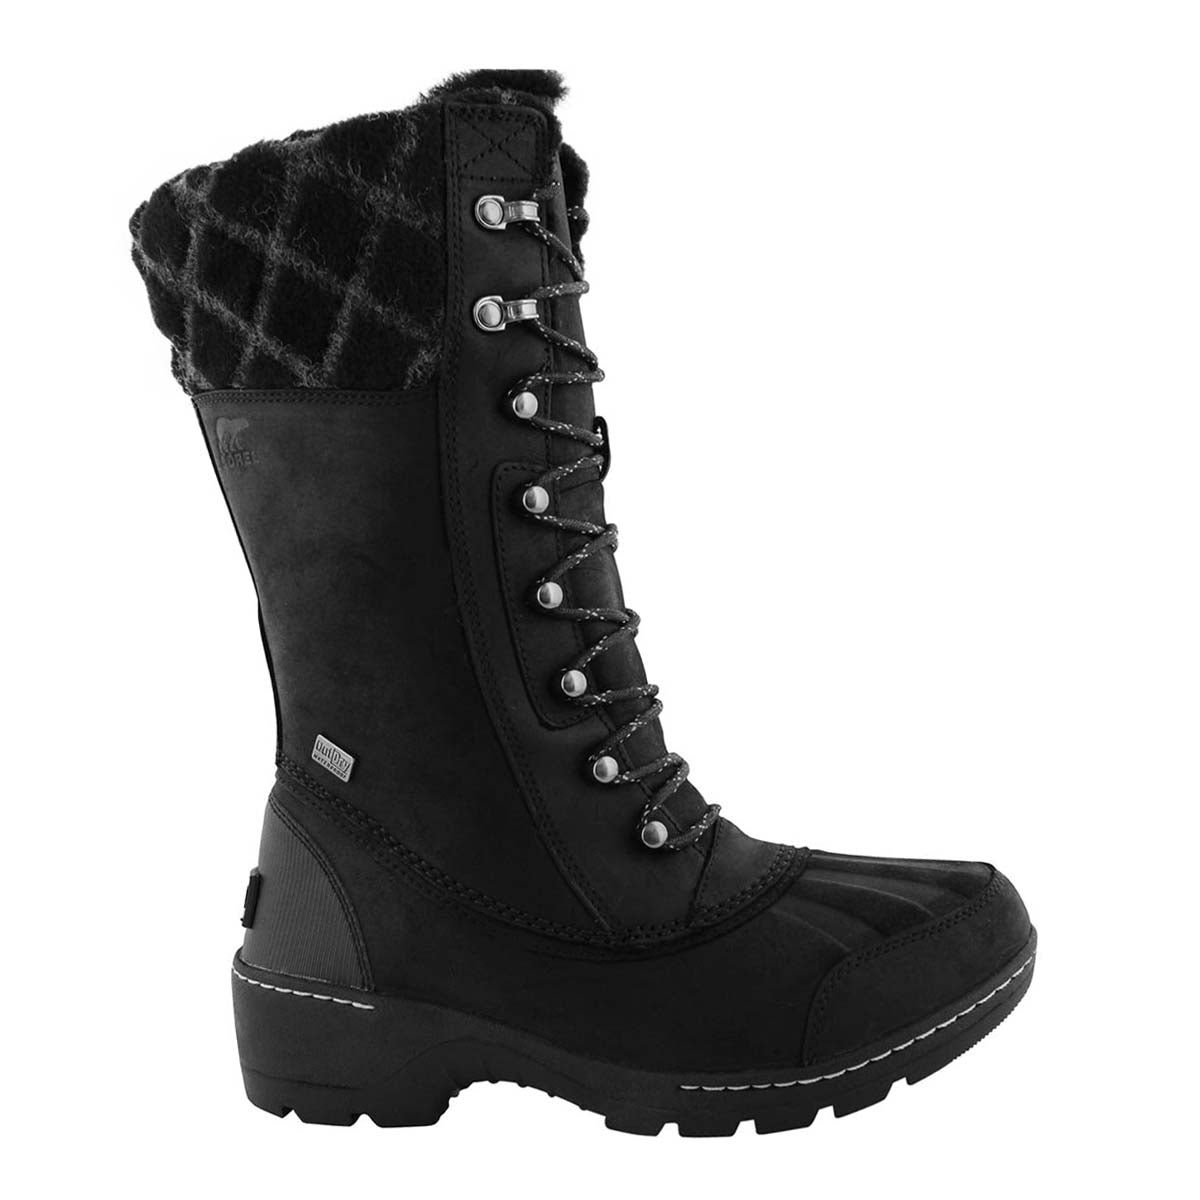 Lds Whistler Tall black wtpf winter boot